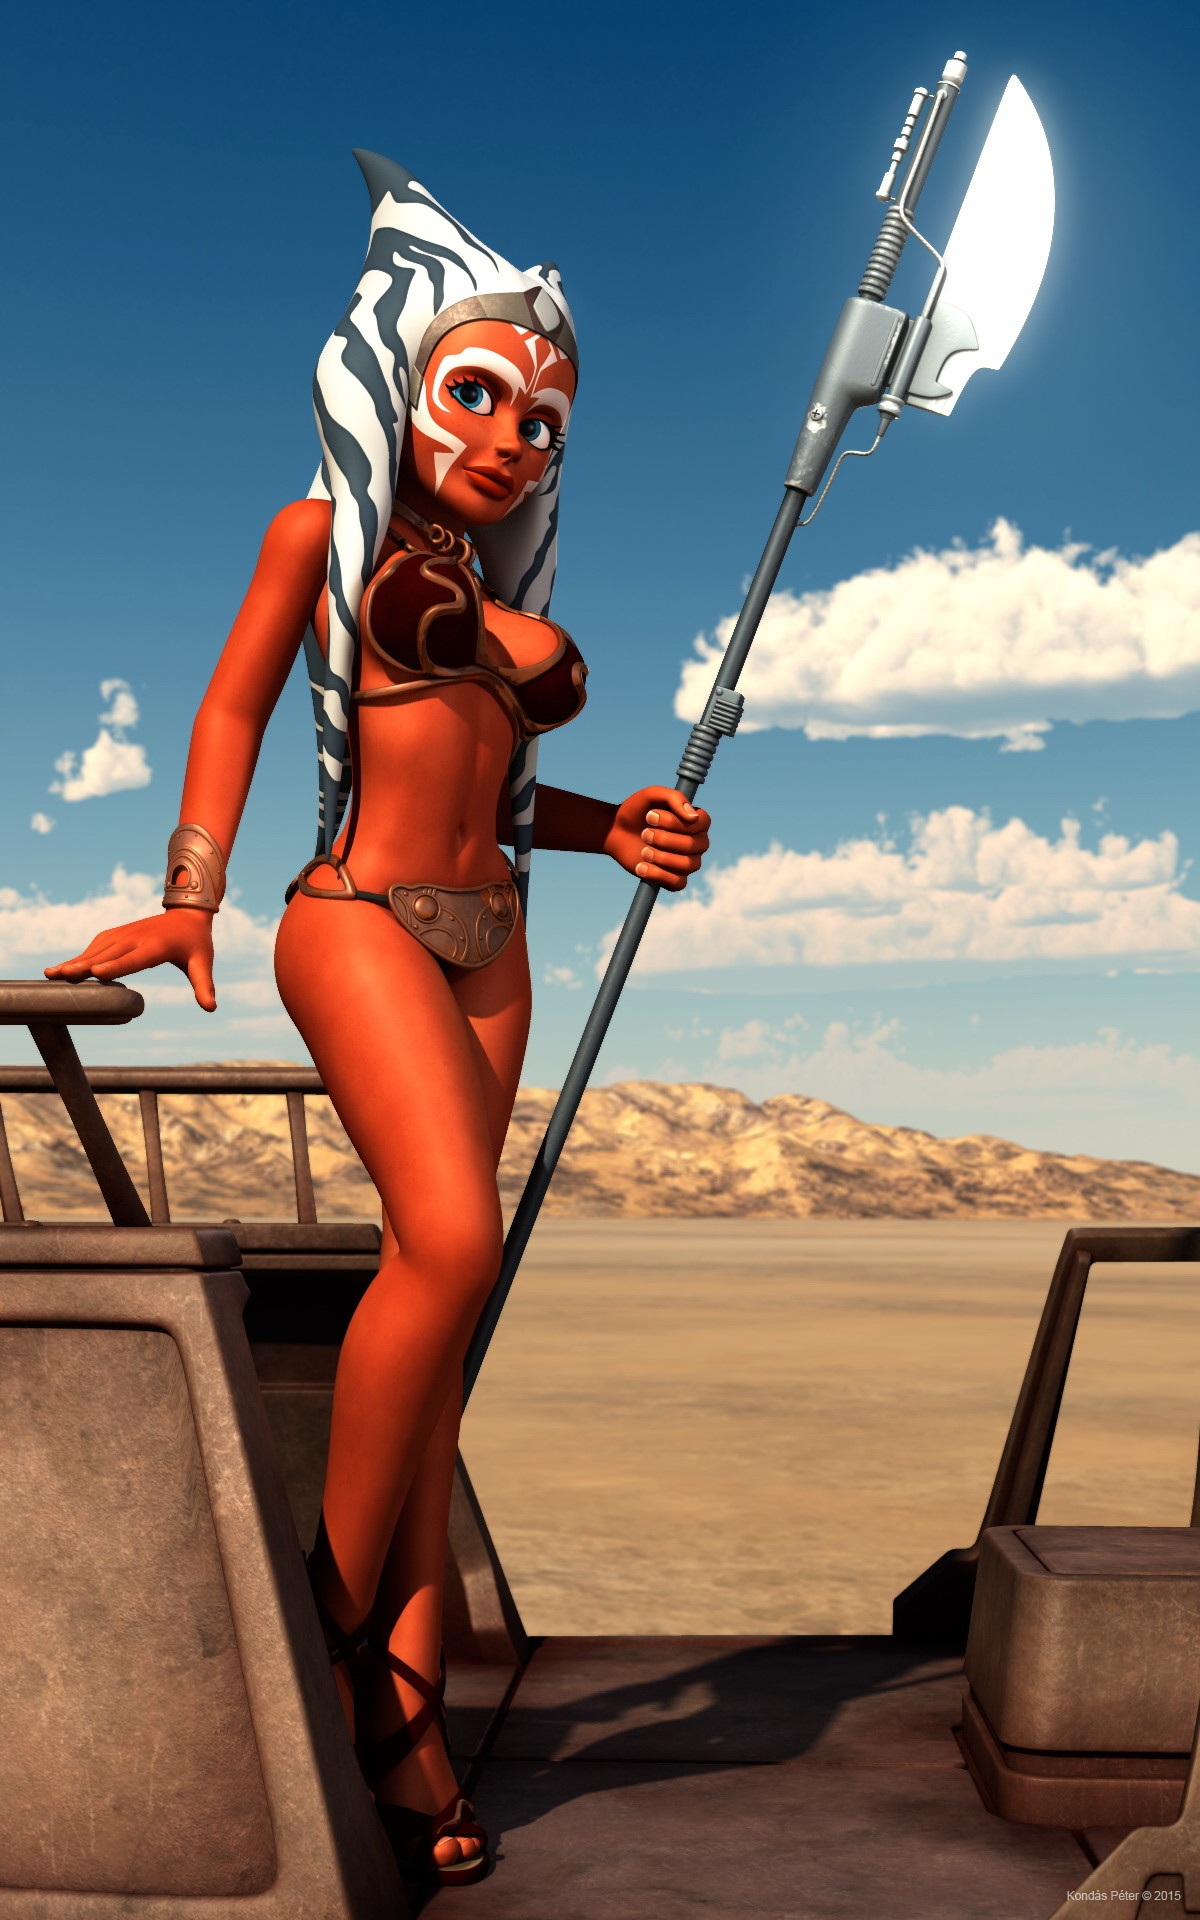 Star wars ahsoka tano nackt sexy submissive girl